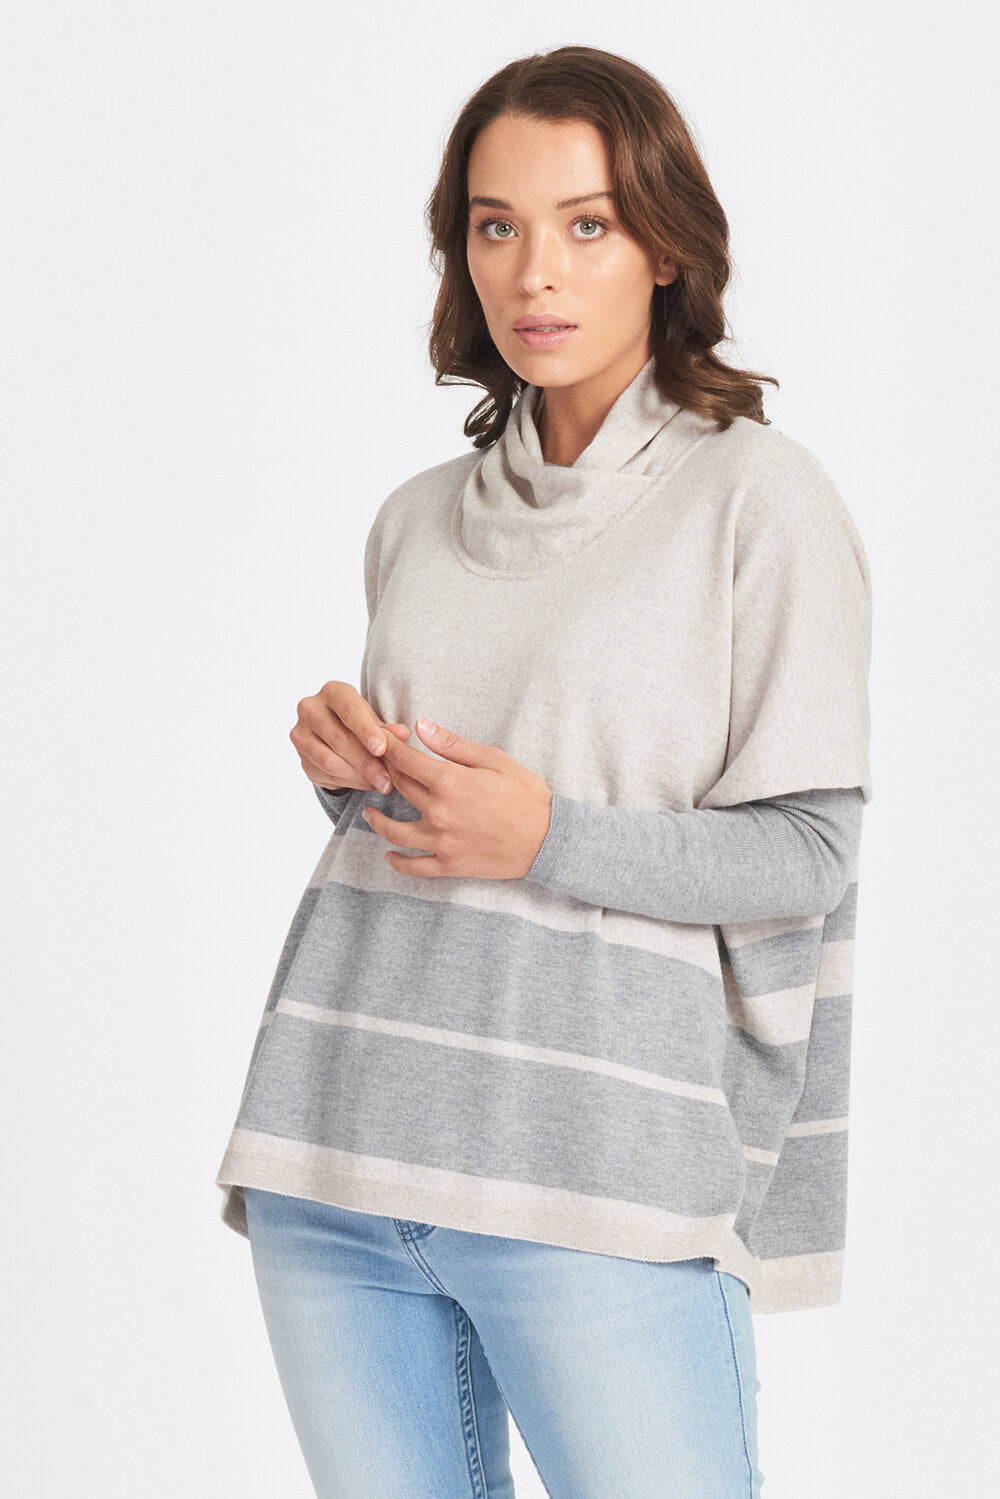 100% Superfine Oversized Stripe Jumper - Sand/Pewter